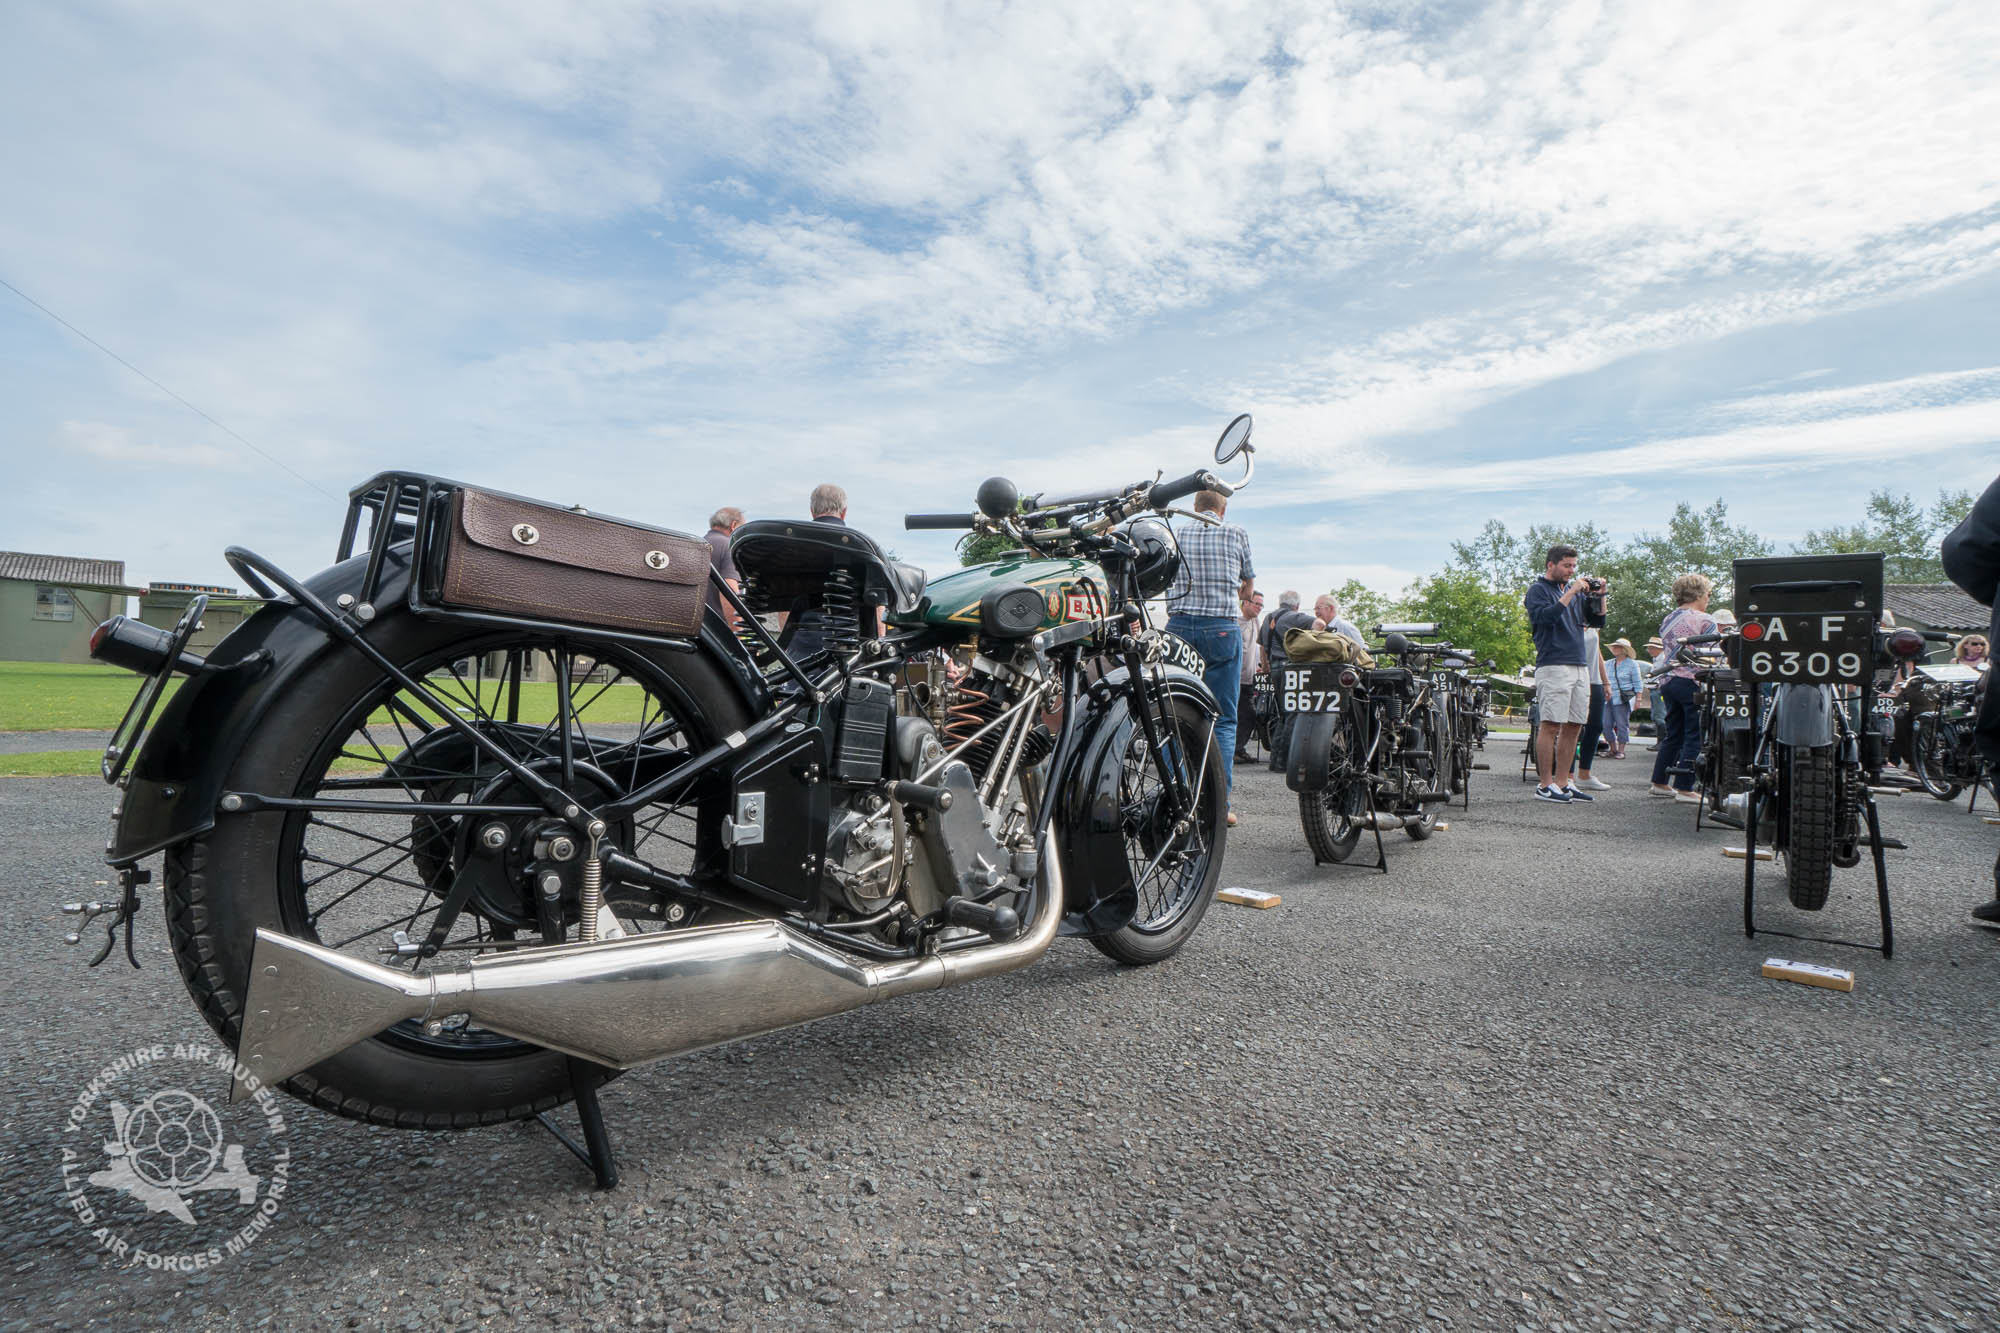 More than fifty veteran and vintage motorcycles readying for the off